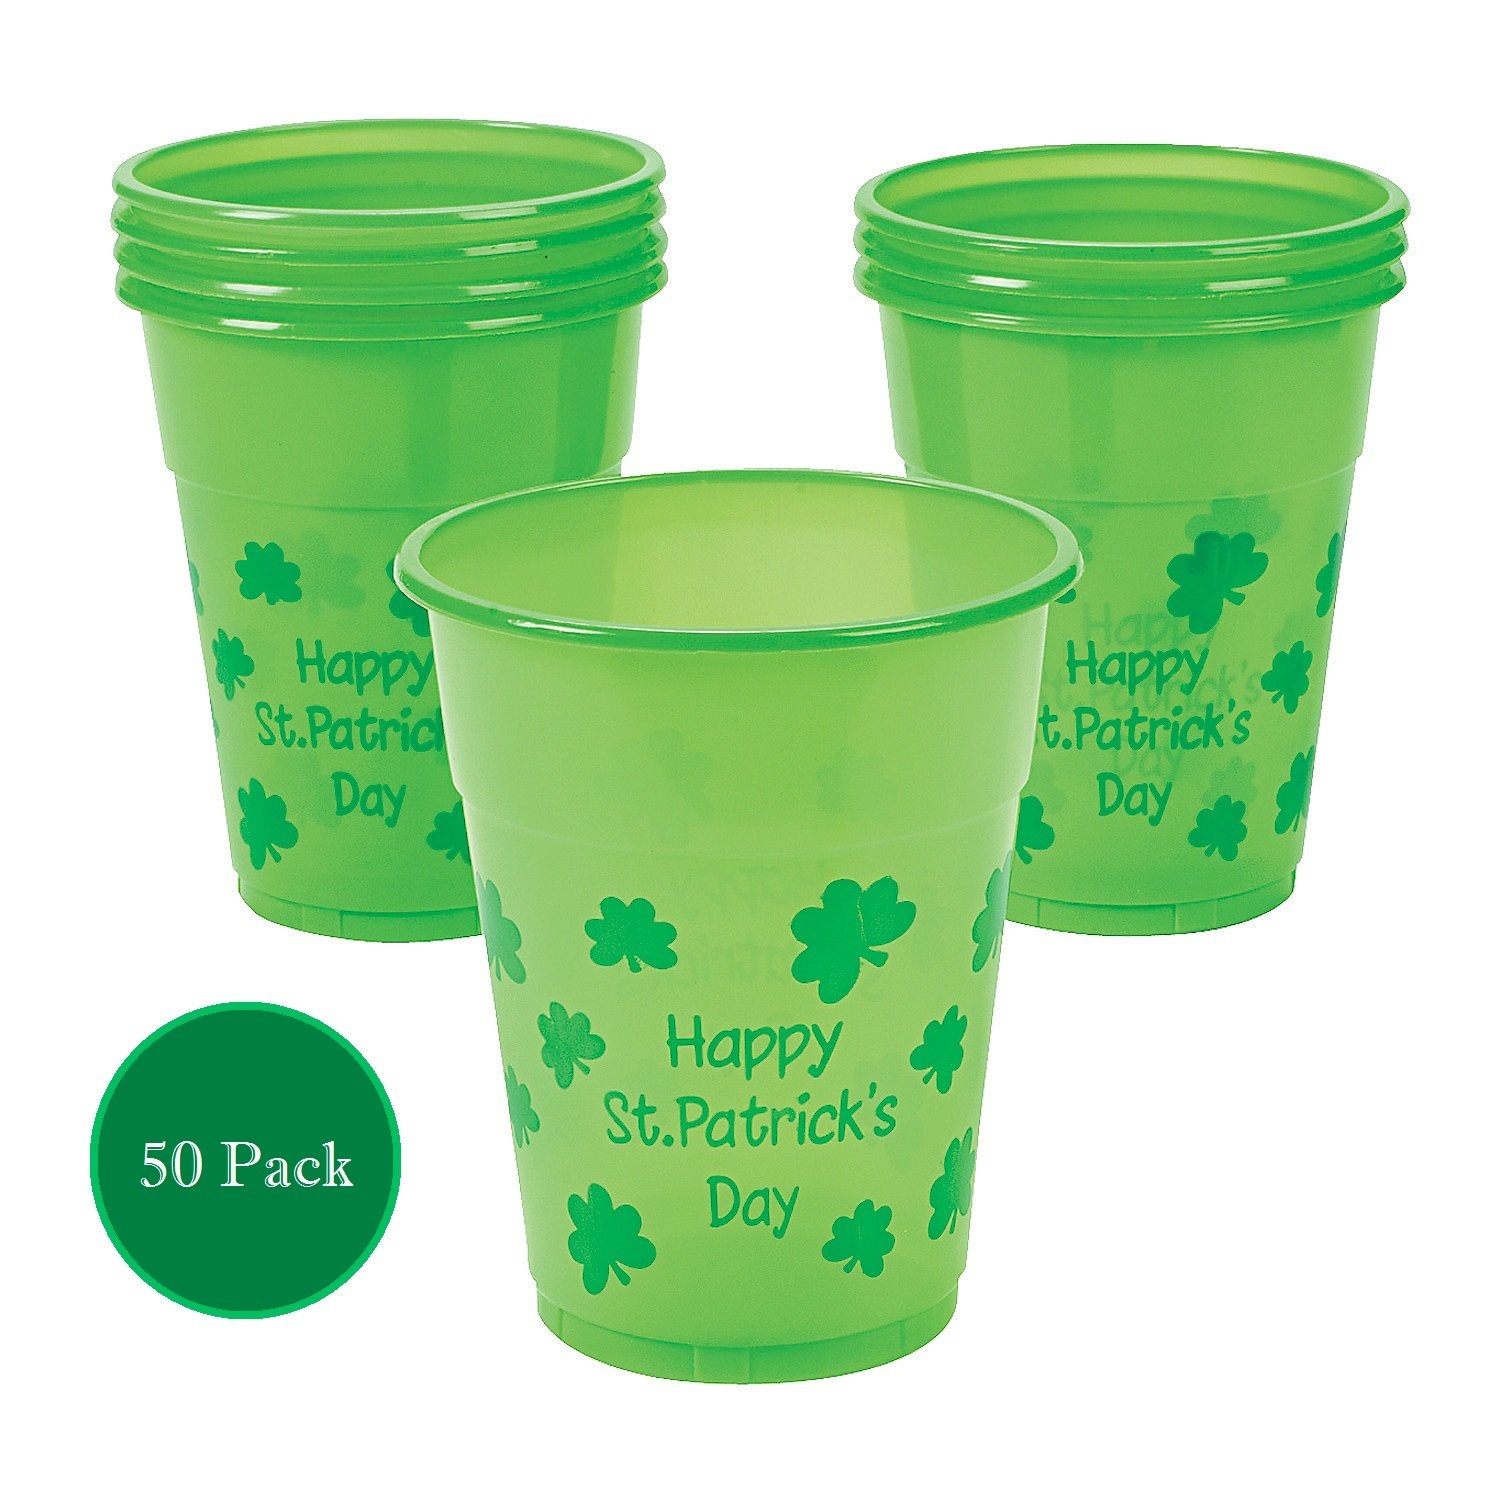 B006VS2EOU Fun Express St. Patrick's Day Disposable Cups : Package of 50 71X8V6ZusDL